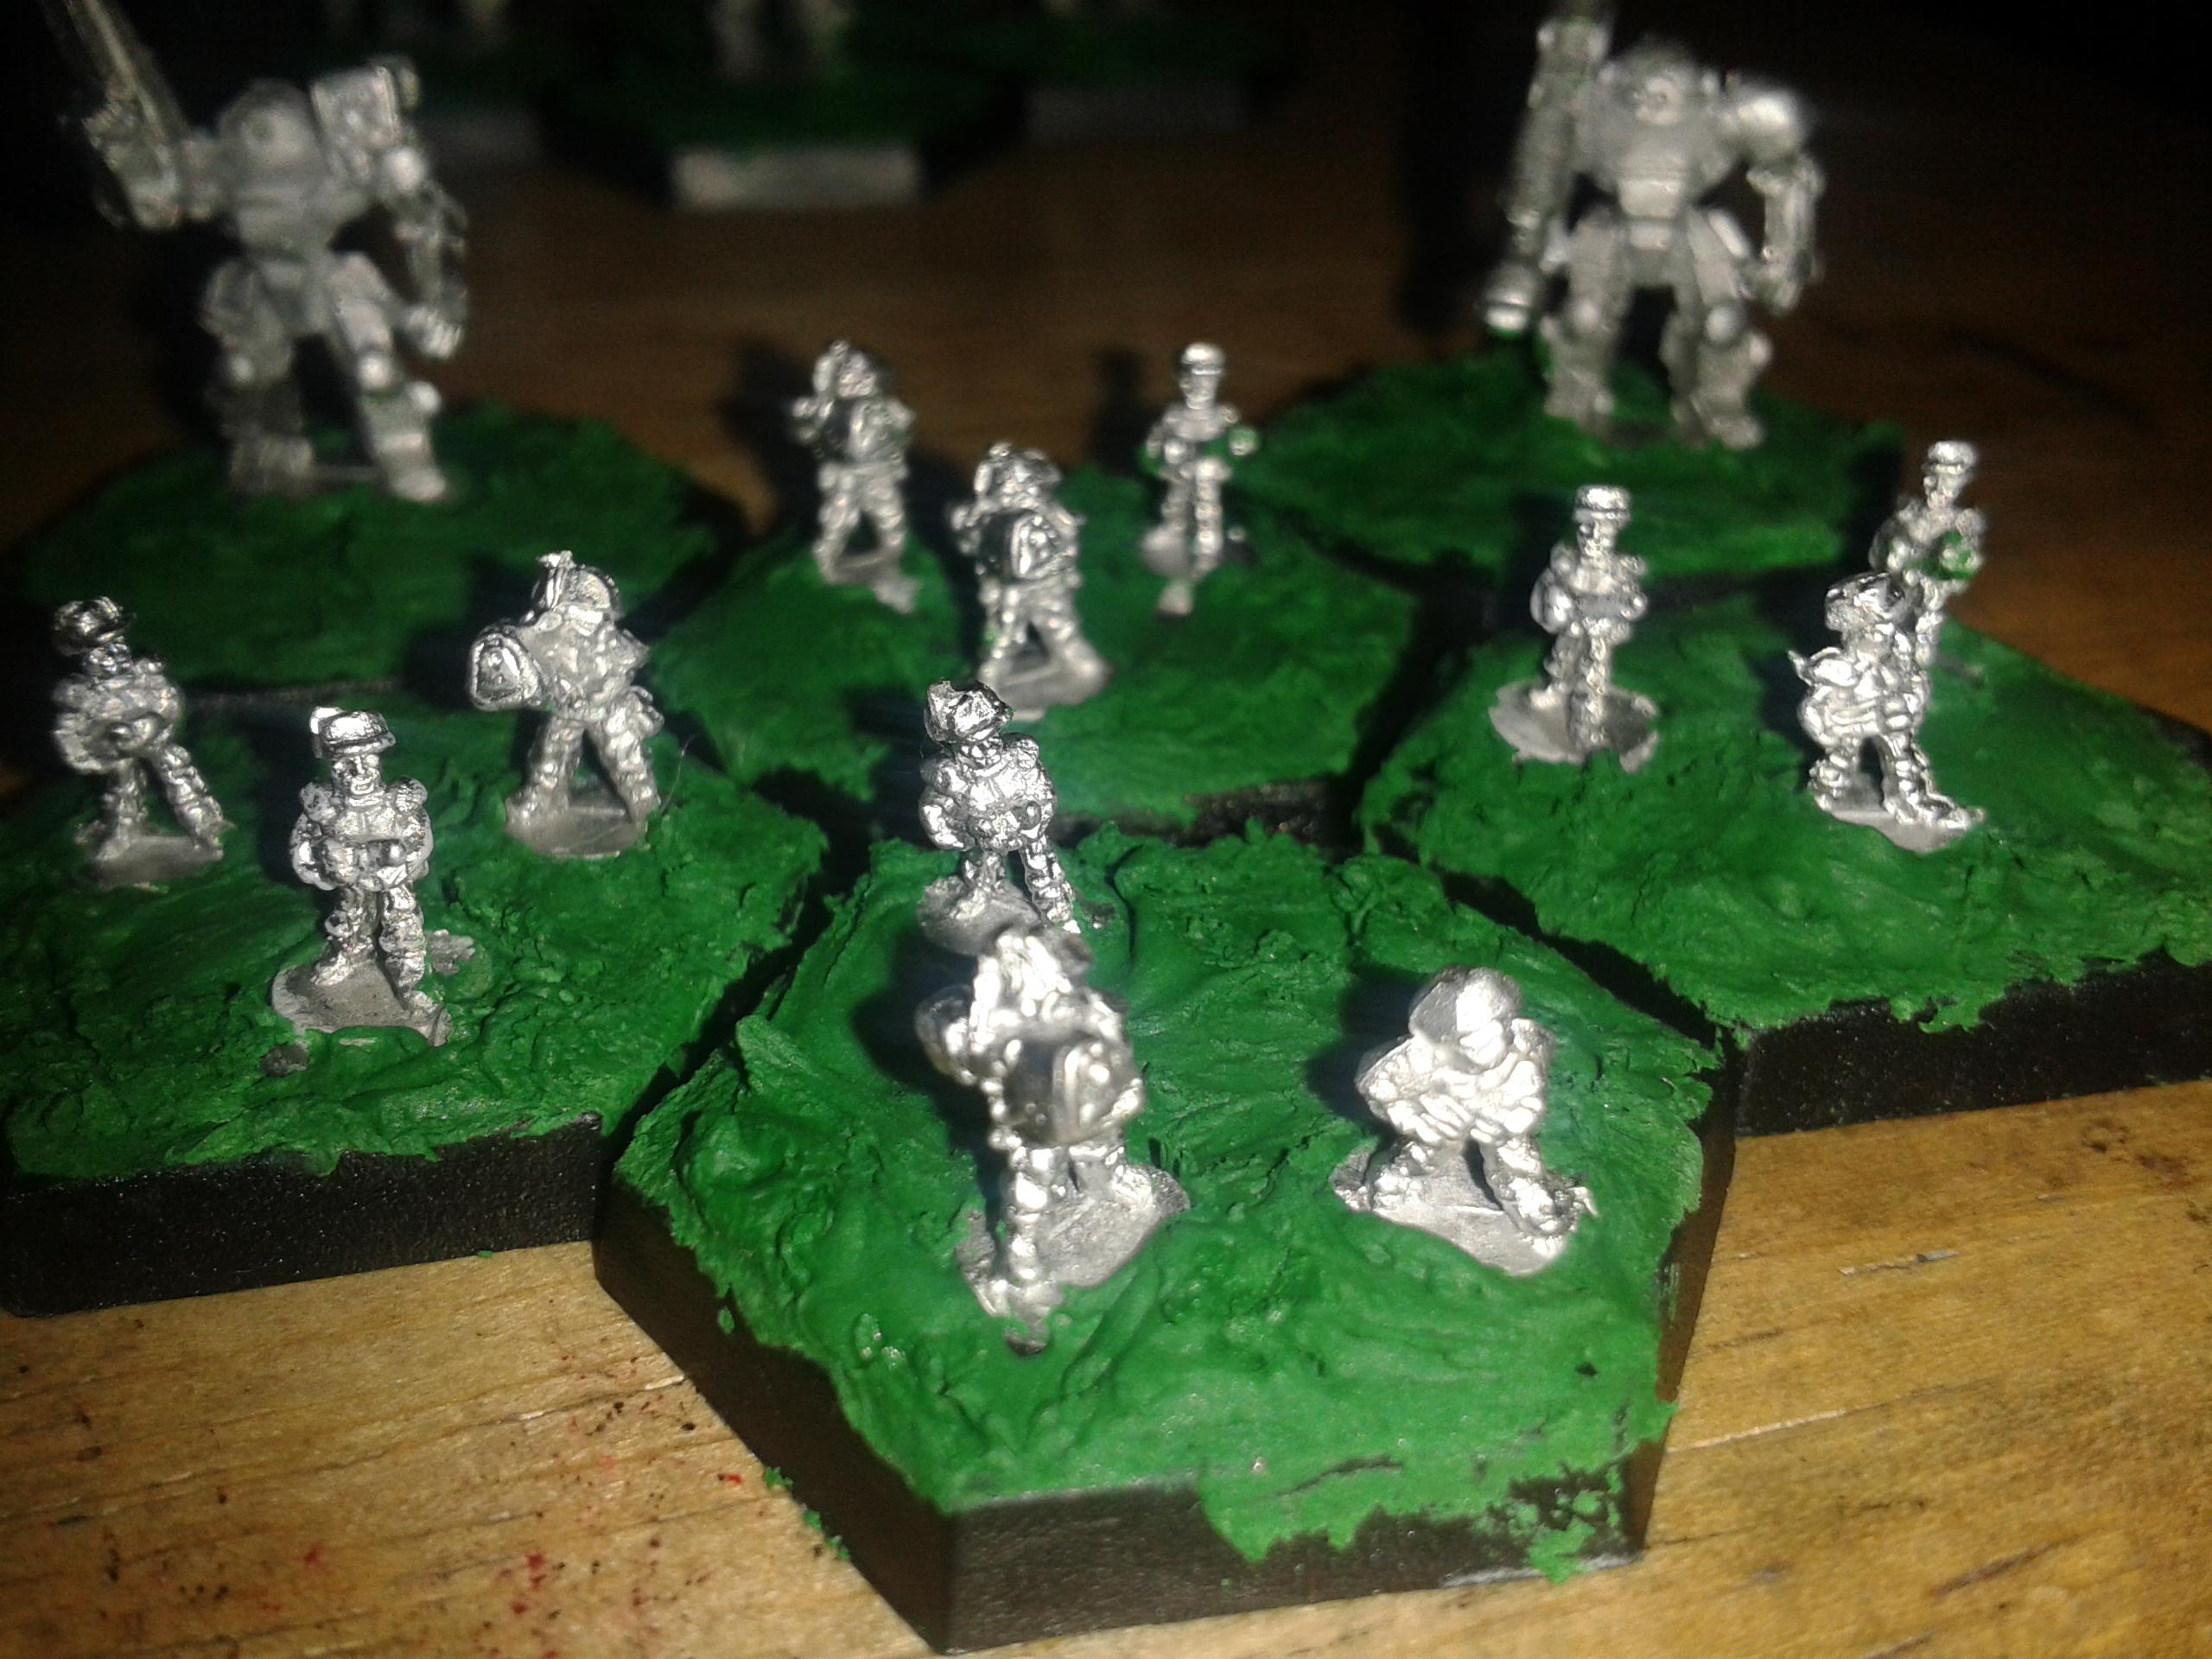 6mm, Sci Fi, 6mm Mixed infantry